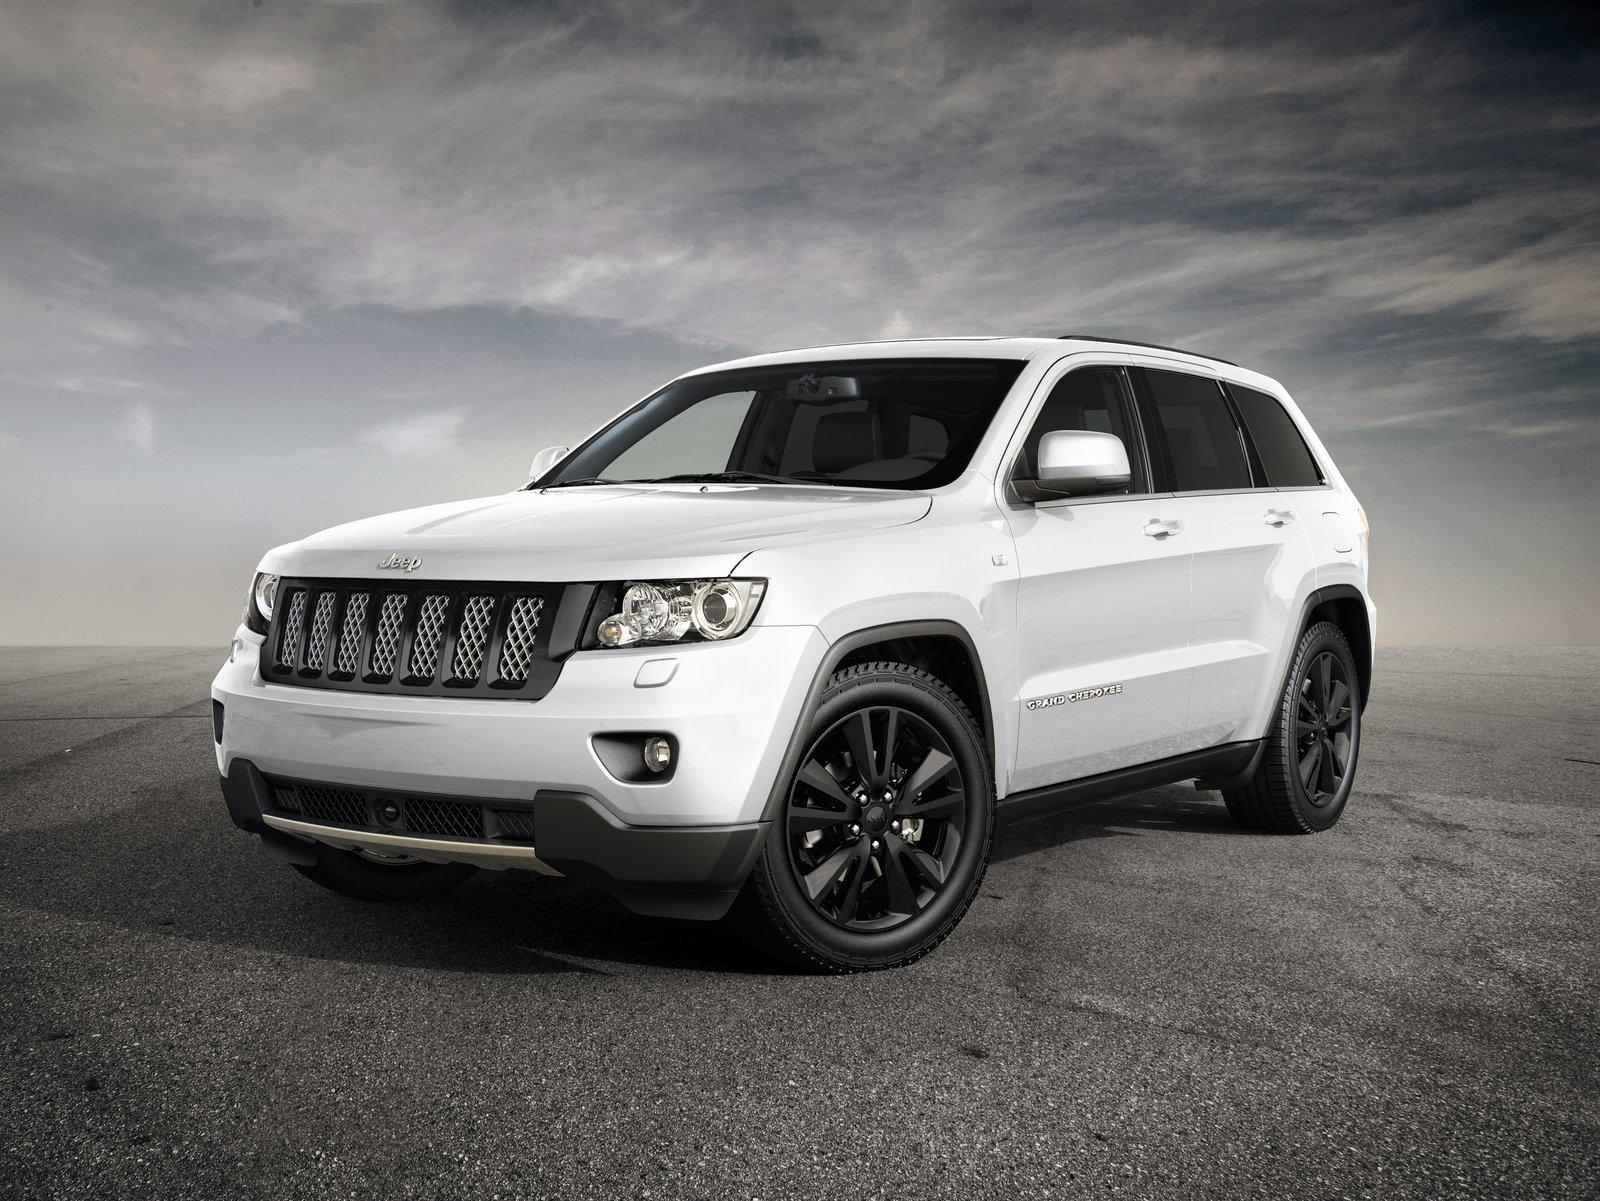 2012 Jeep Grand Cherokee Sports Concept Top Speed